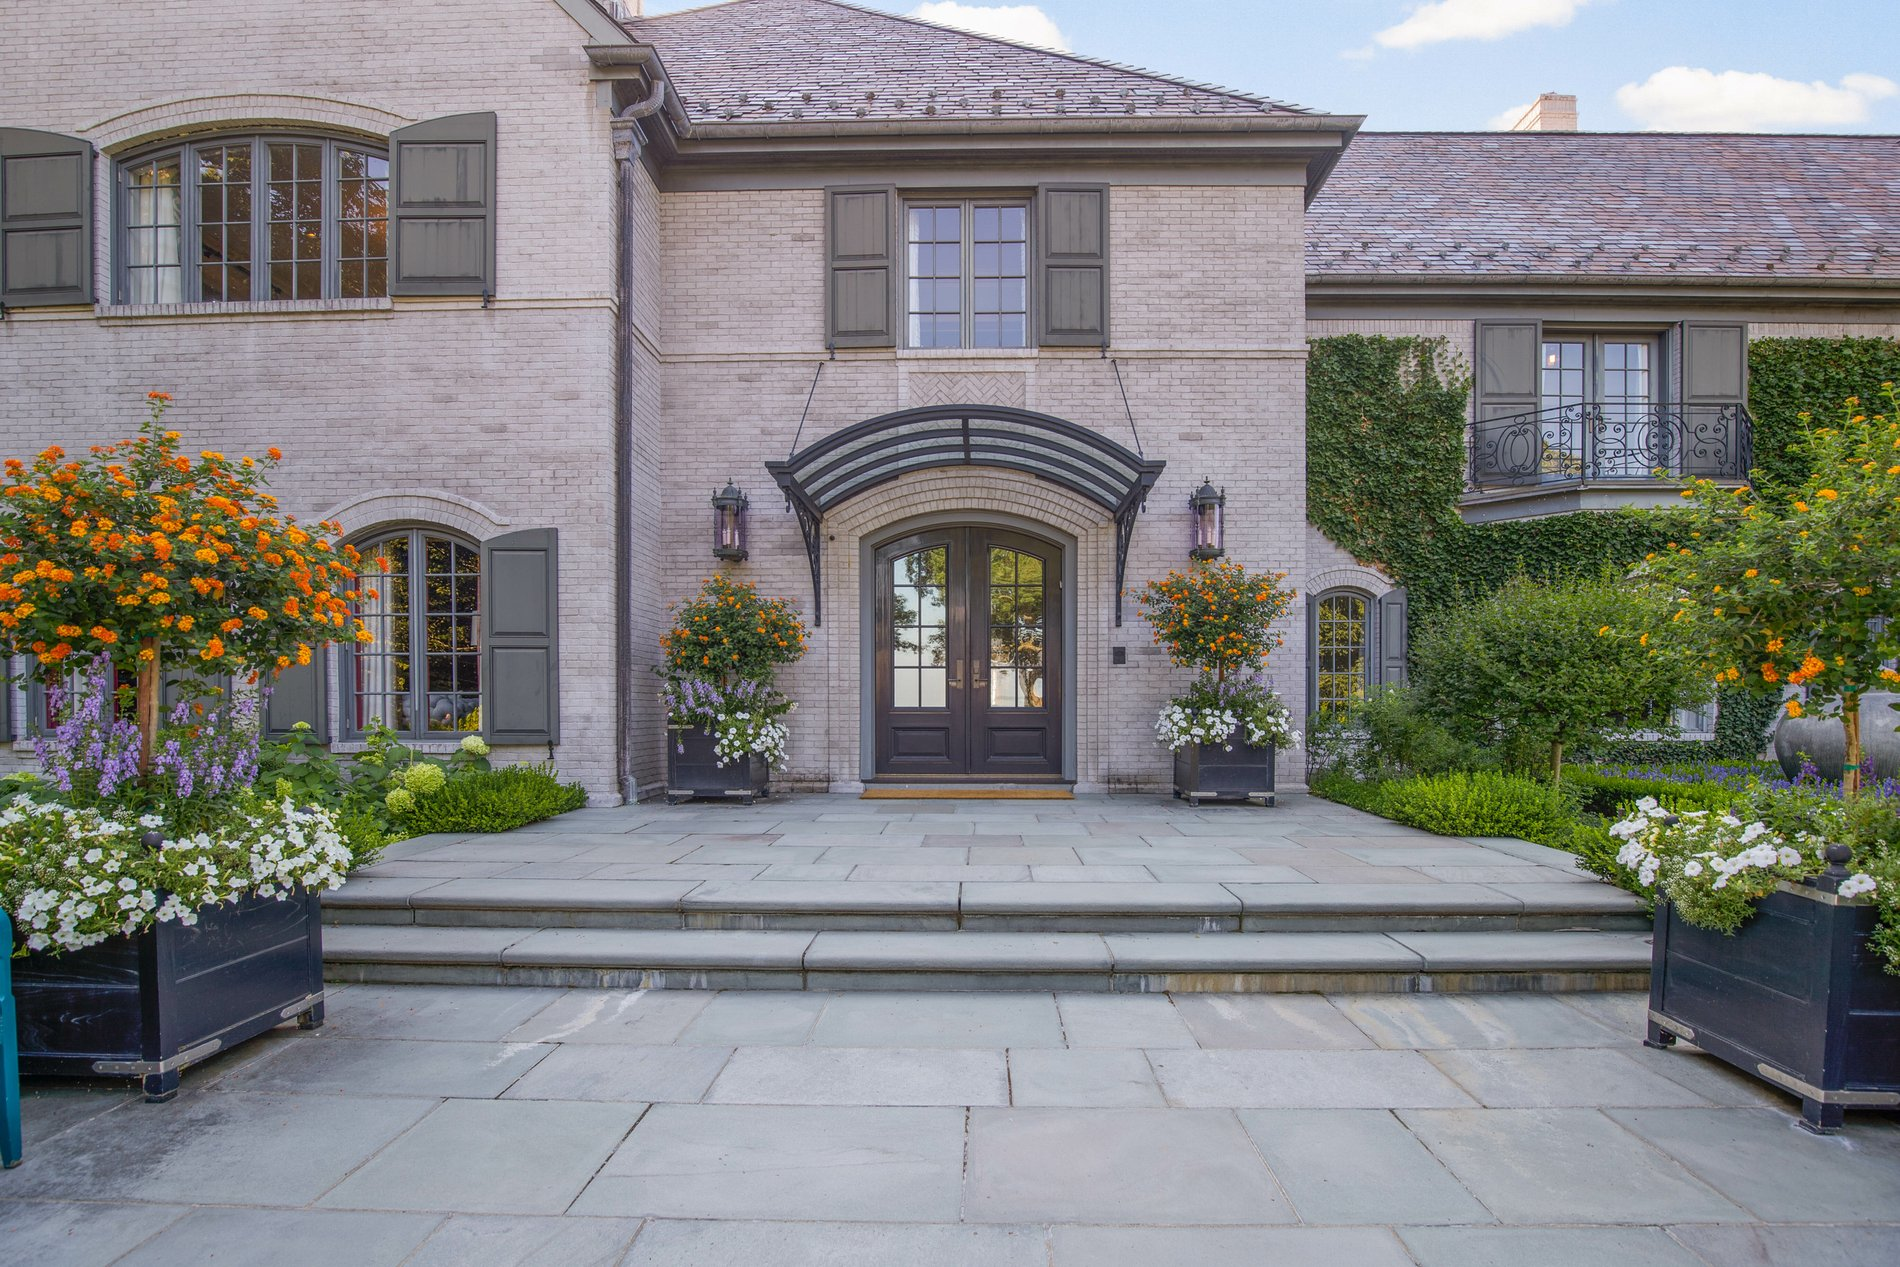 Brick home with an arched metal portico.